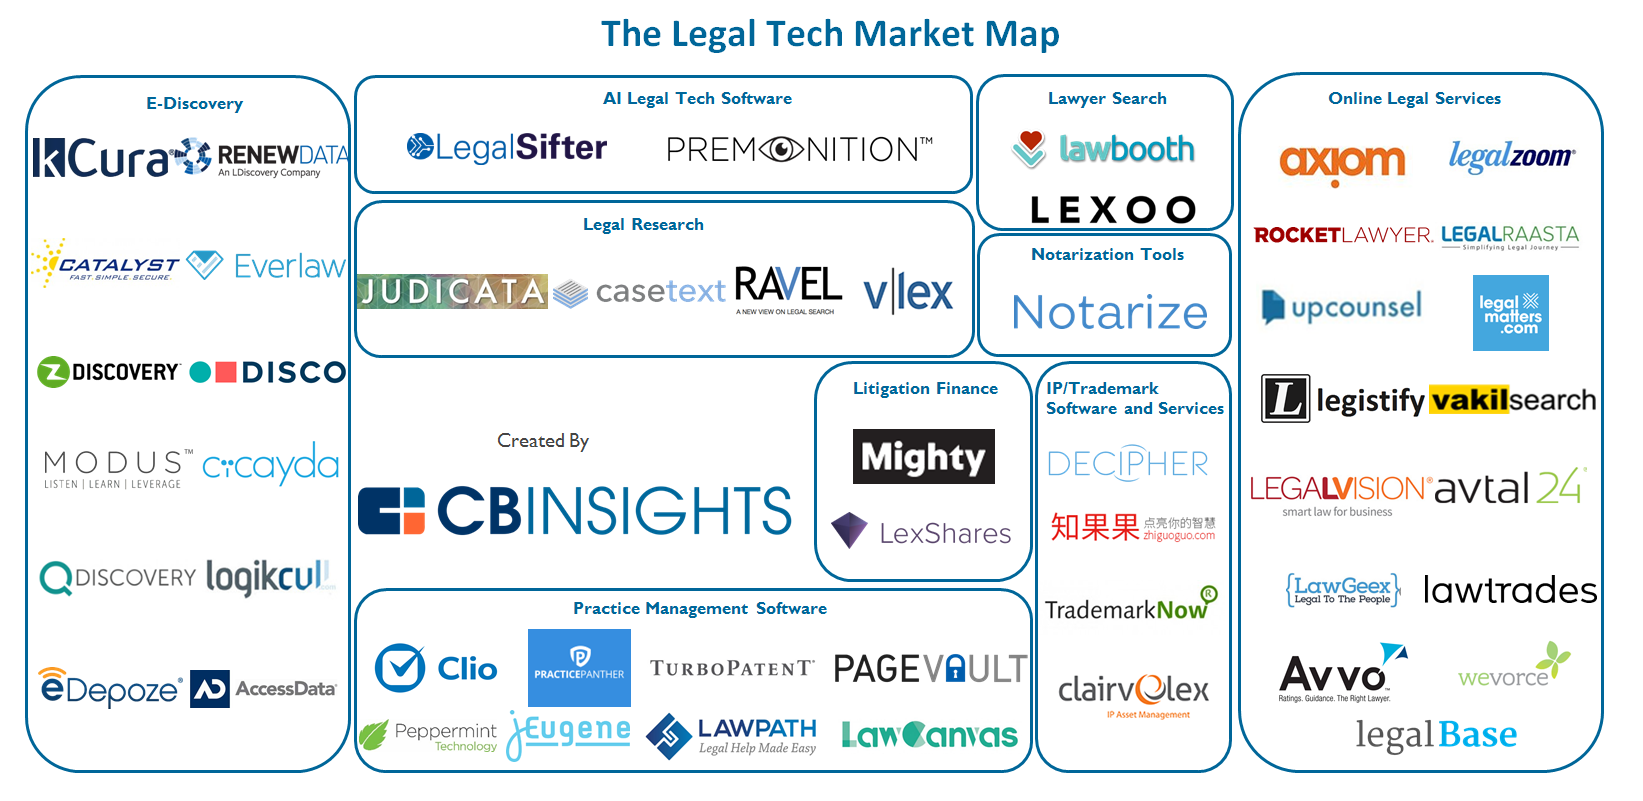 50 Startups Disrupting The Legal Services Industry What